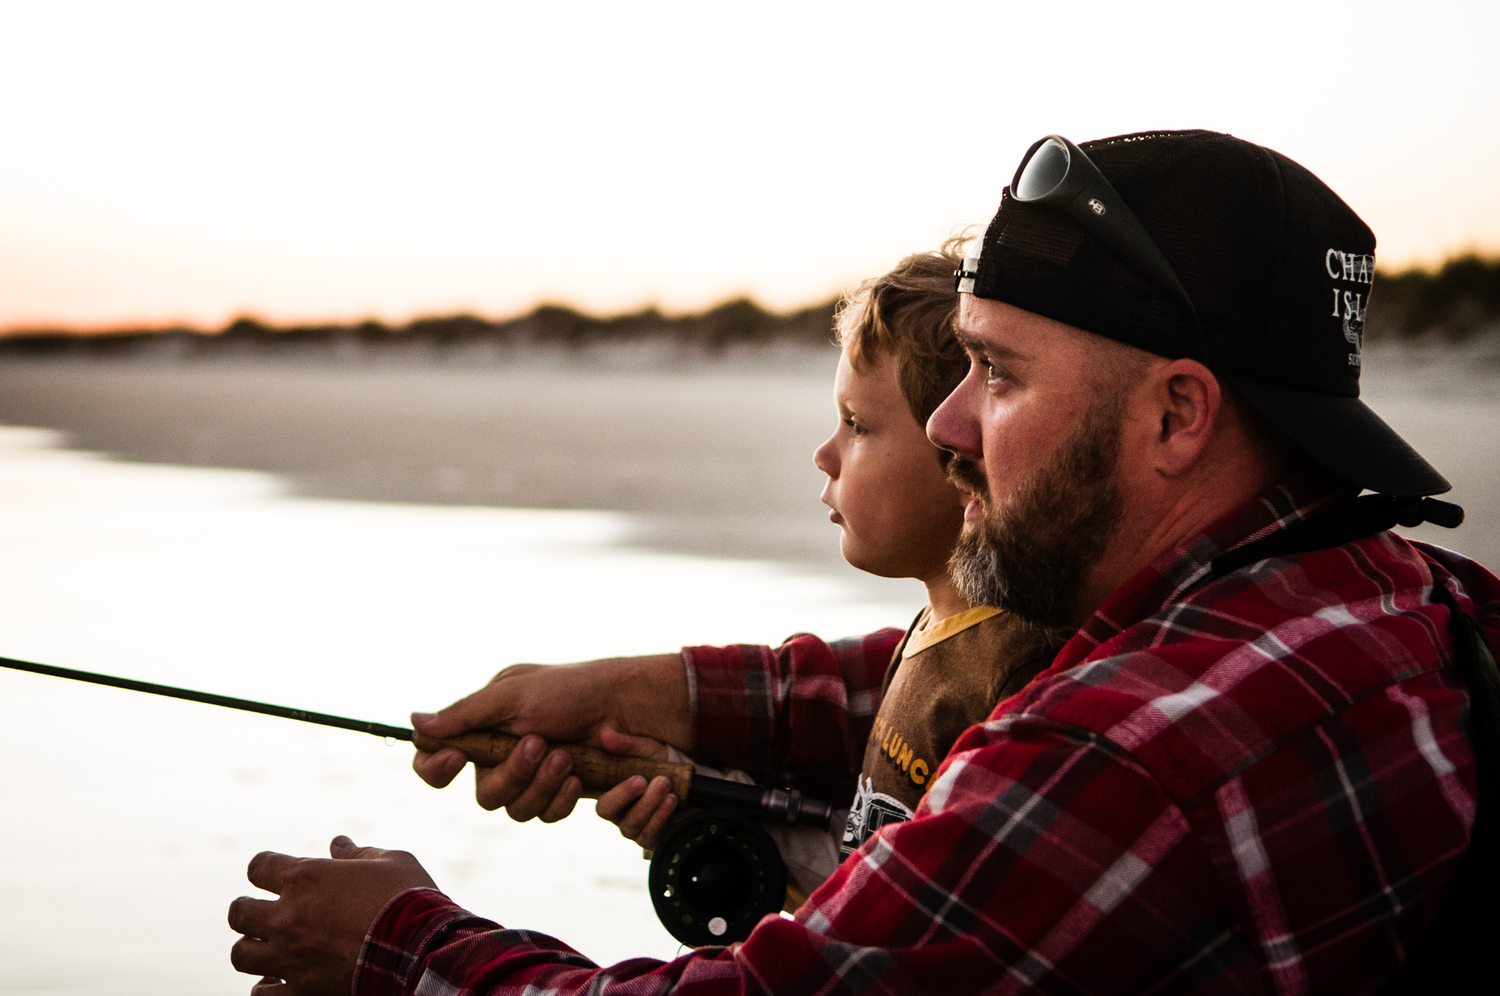 There were no shortage of pictures submitted this year of folks fishing with their kids. But they're not all created equal. This one, captured by Amanda Ball, stood out to the judges.